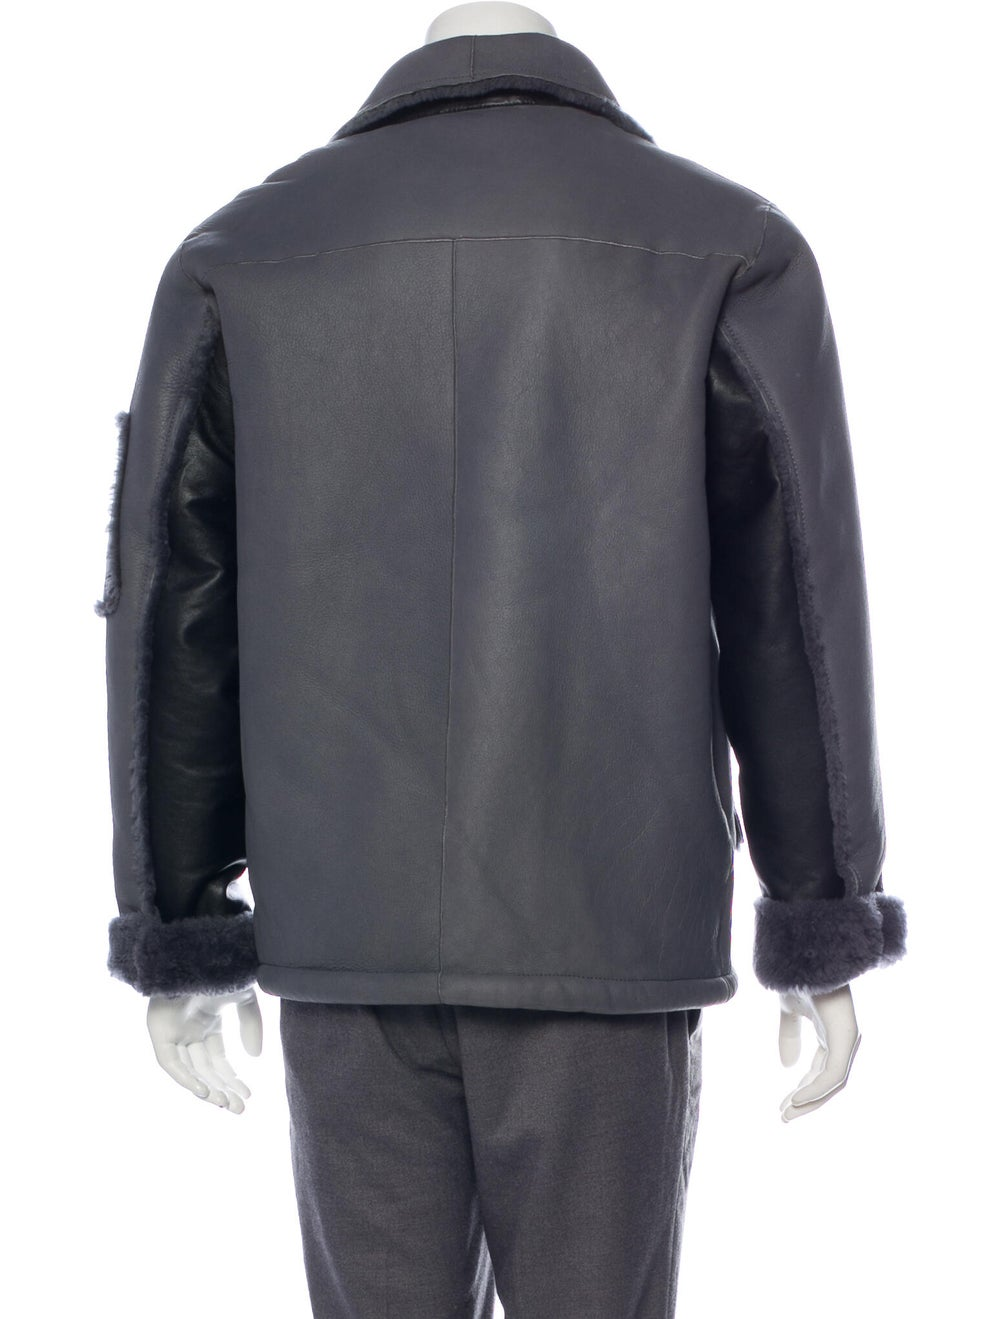 Coach 1941 Shearling-Lined Leather Jacket grey - image 3